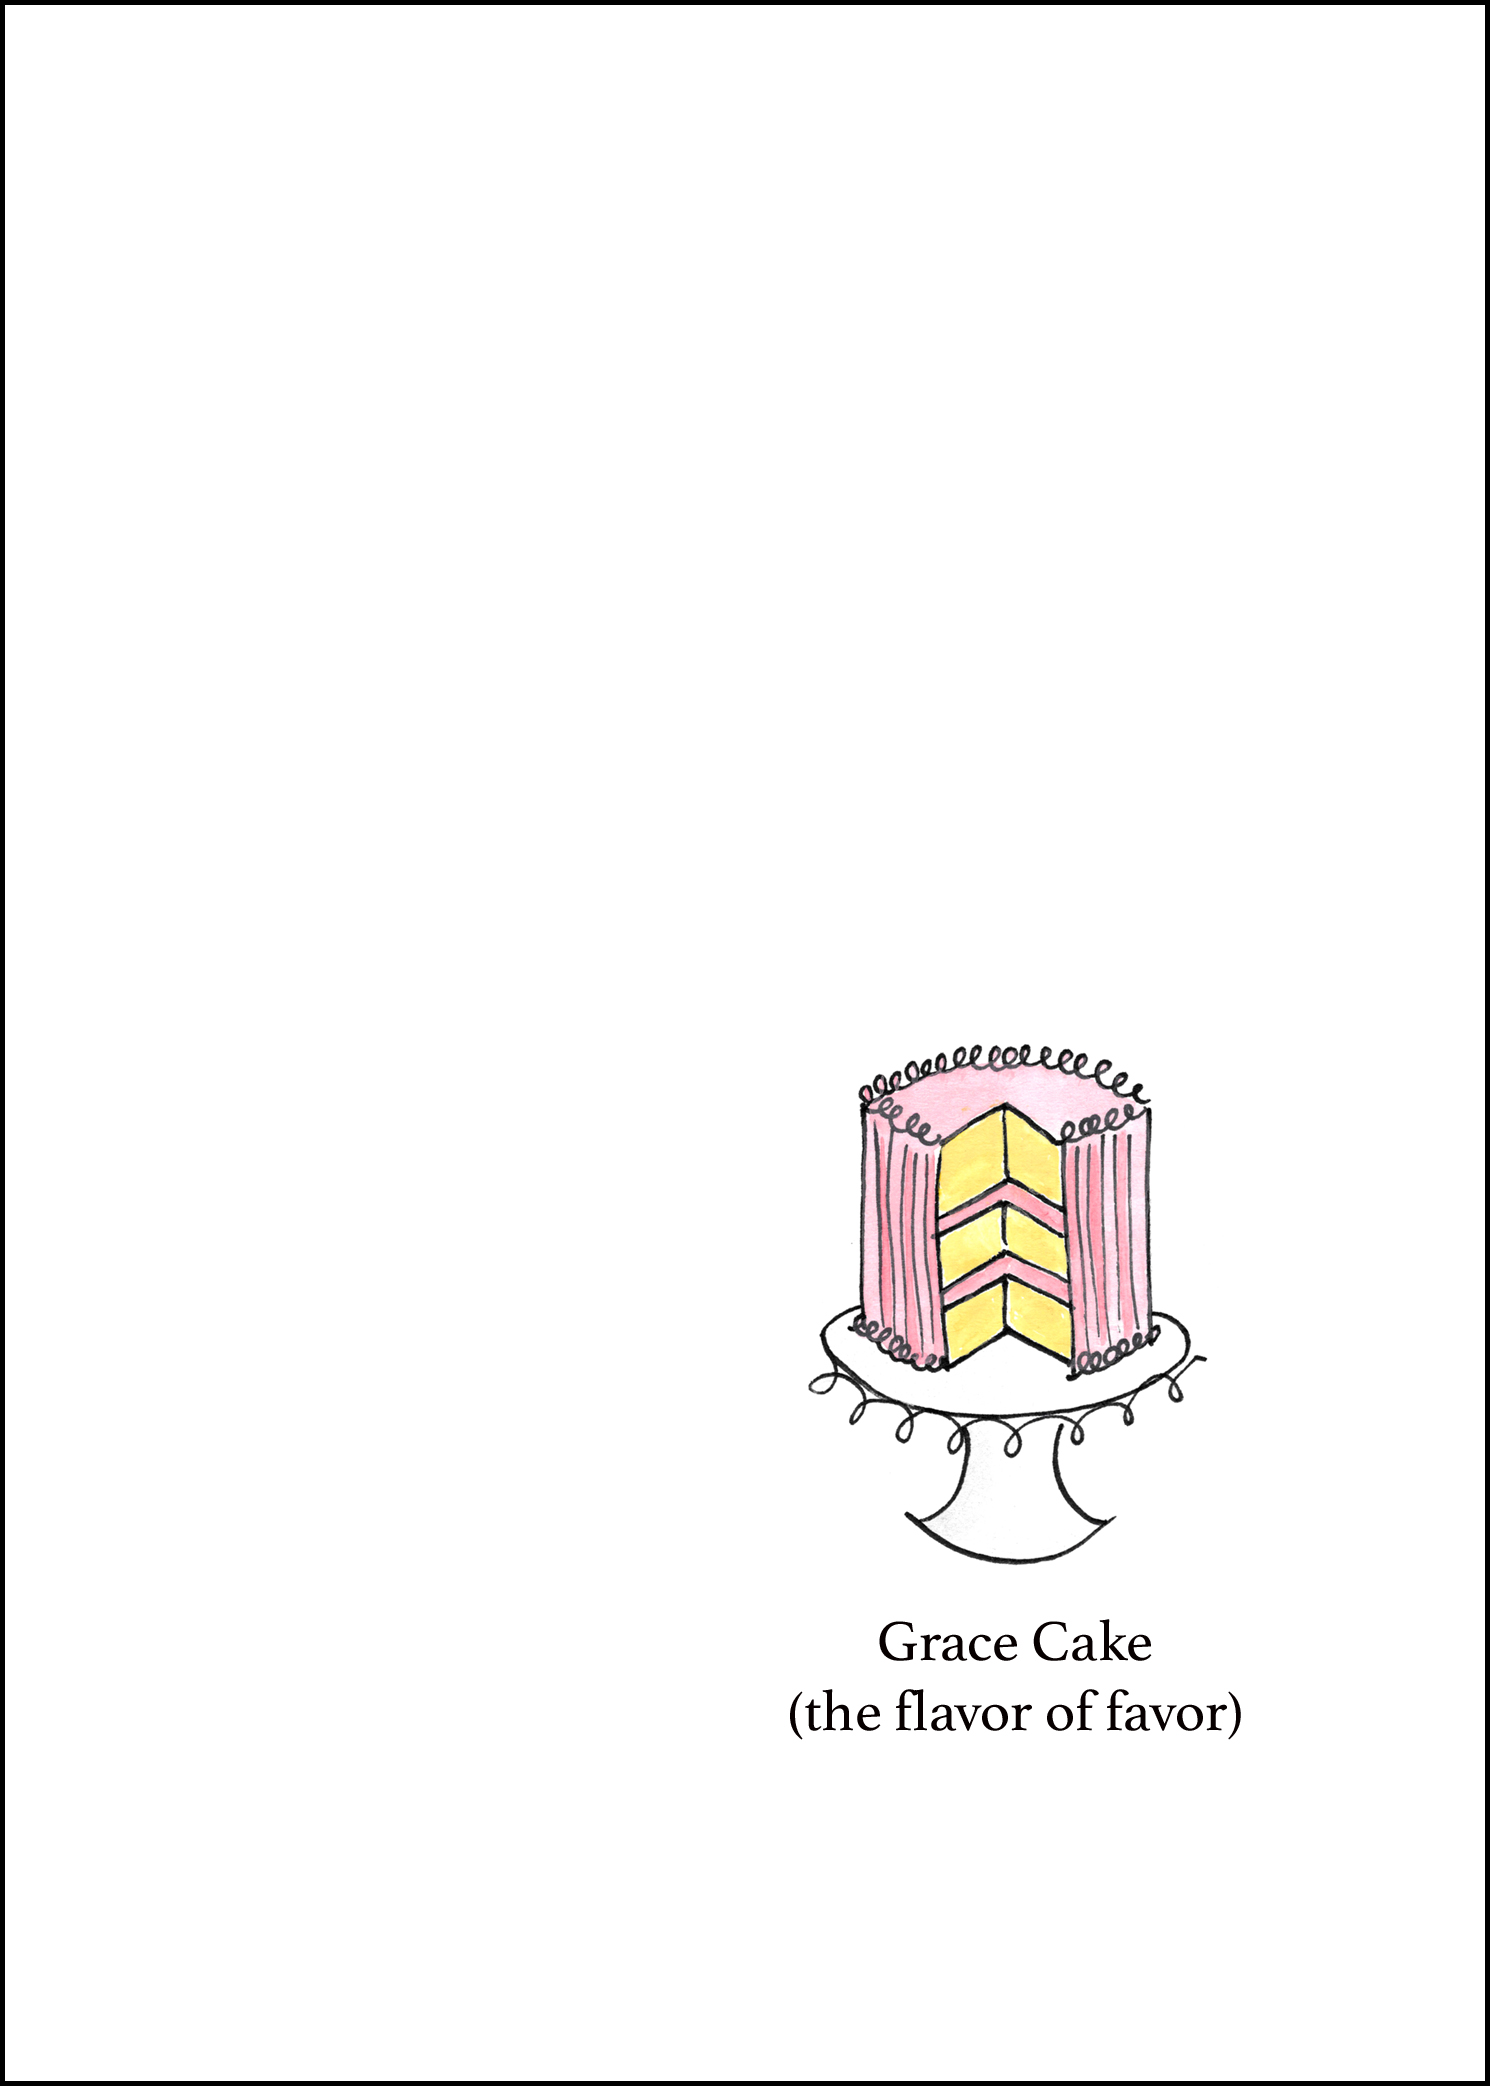 Grace Cake - by Anna Elkins